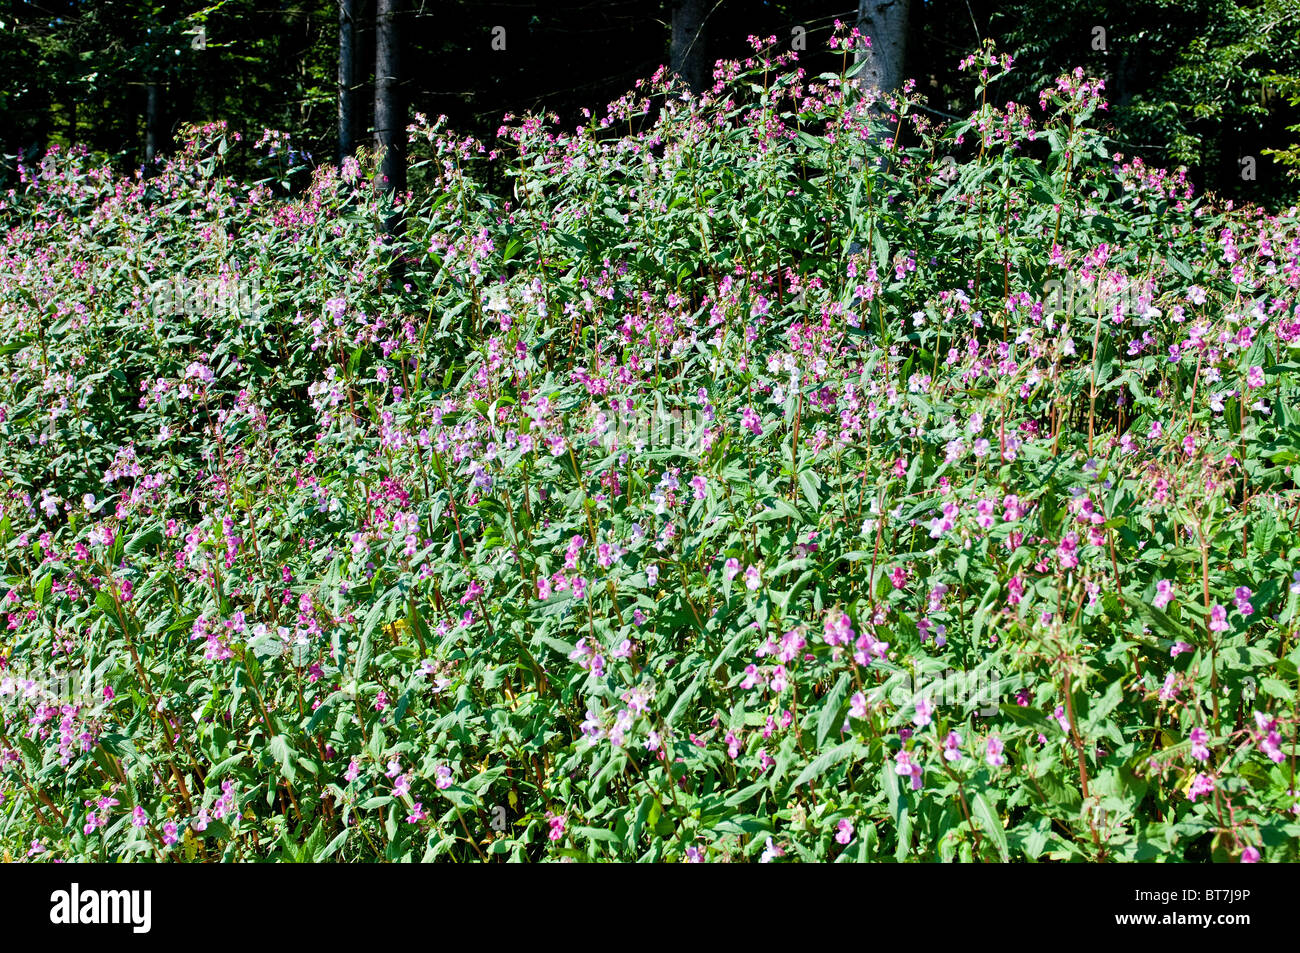 Himalayan Balsam is a pest plant in many parts of Germany Stock Photo